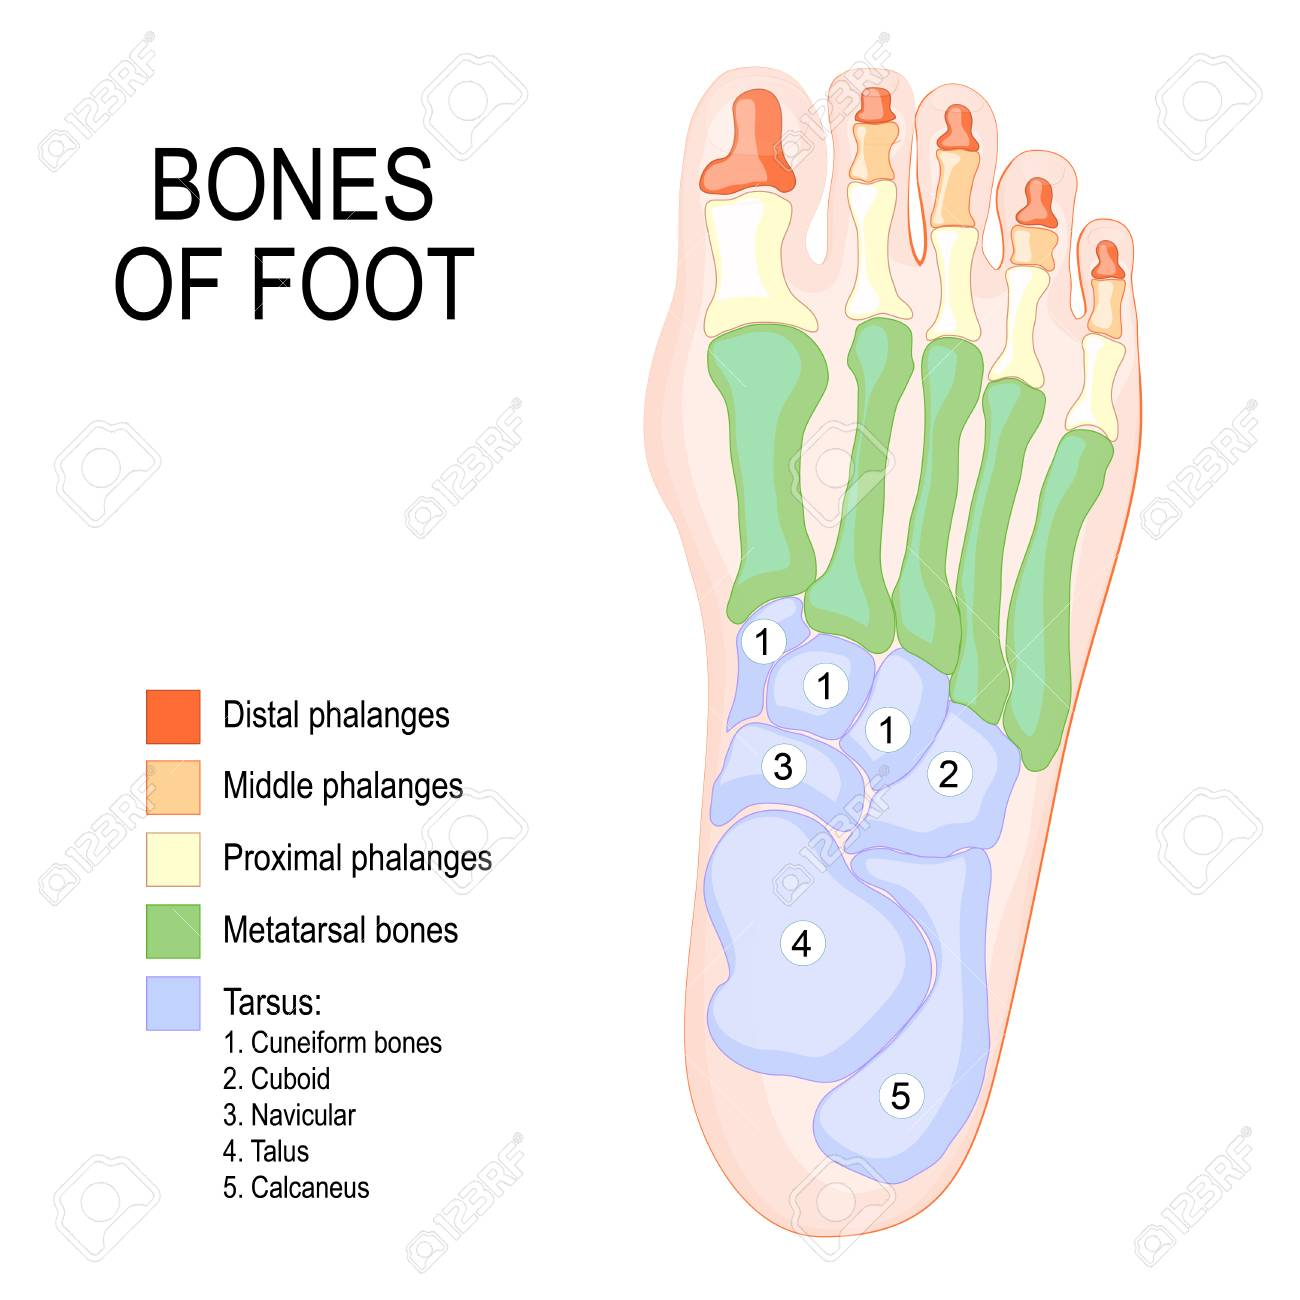 Bones Of Foot Human Anatomy The Diagram Shows The Placement